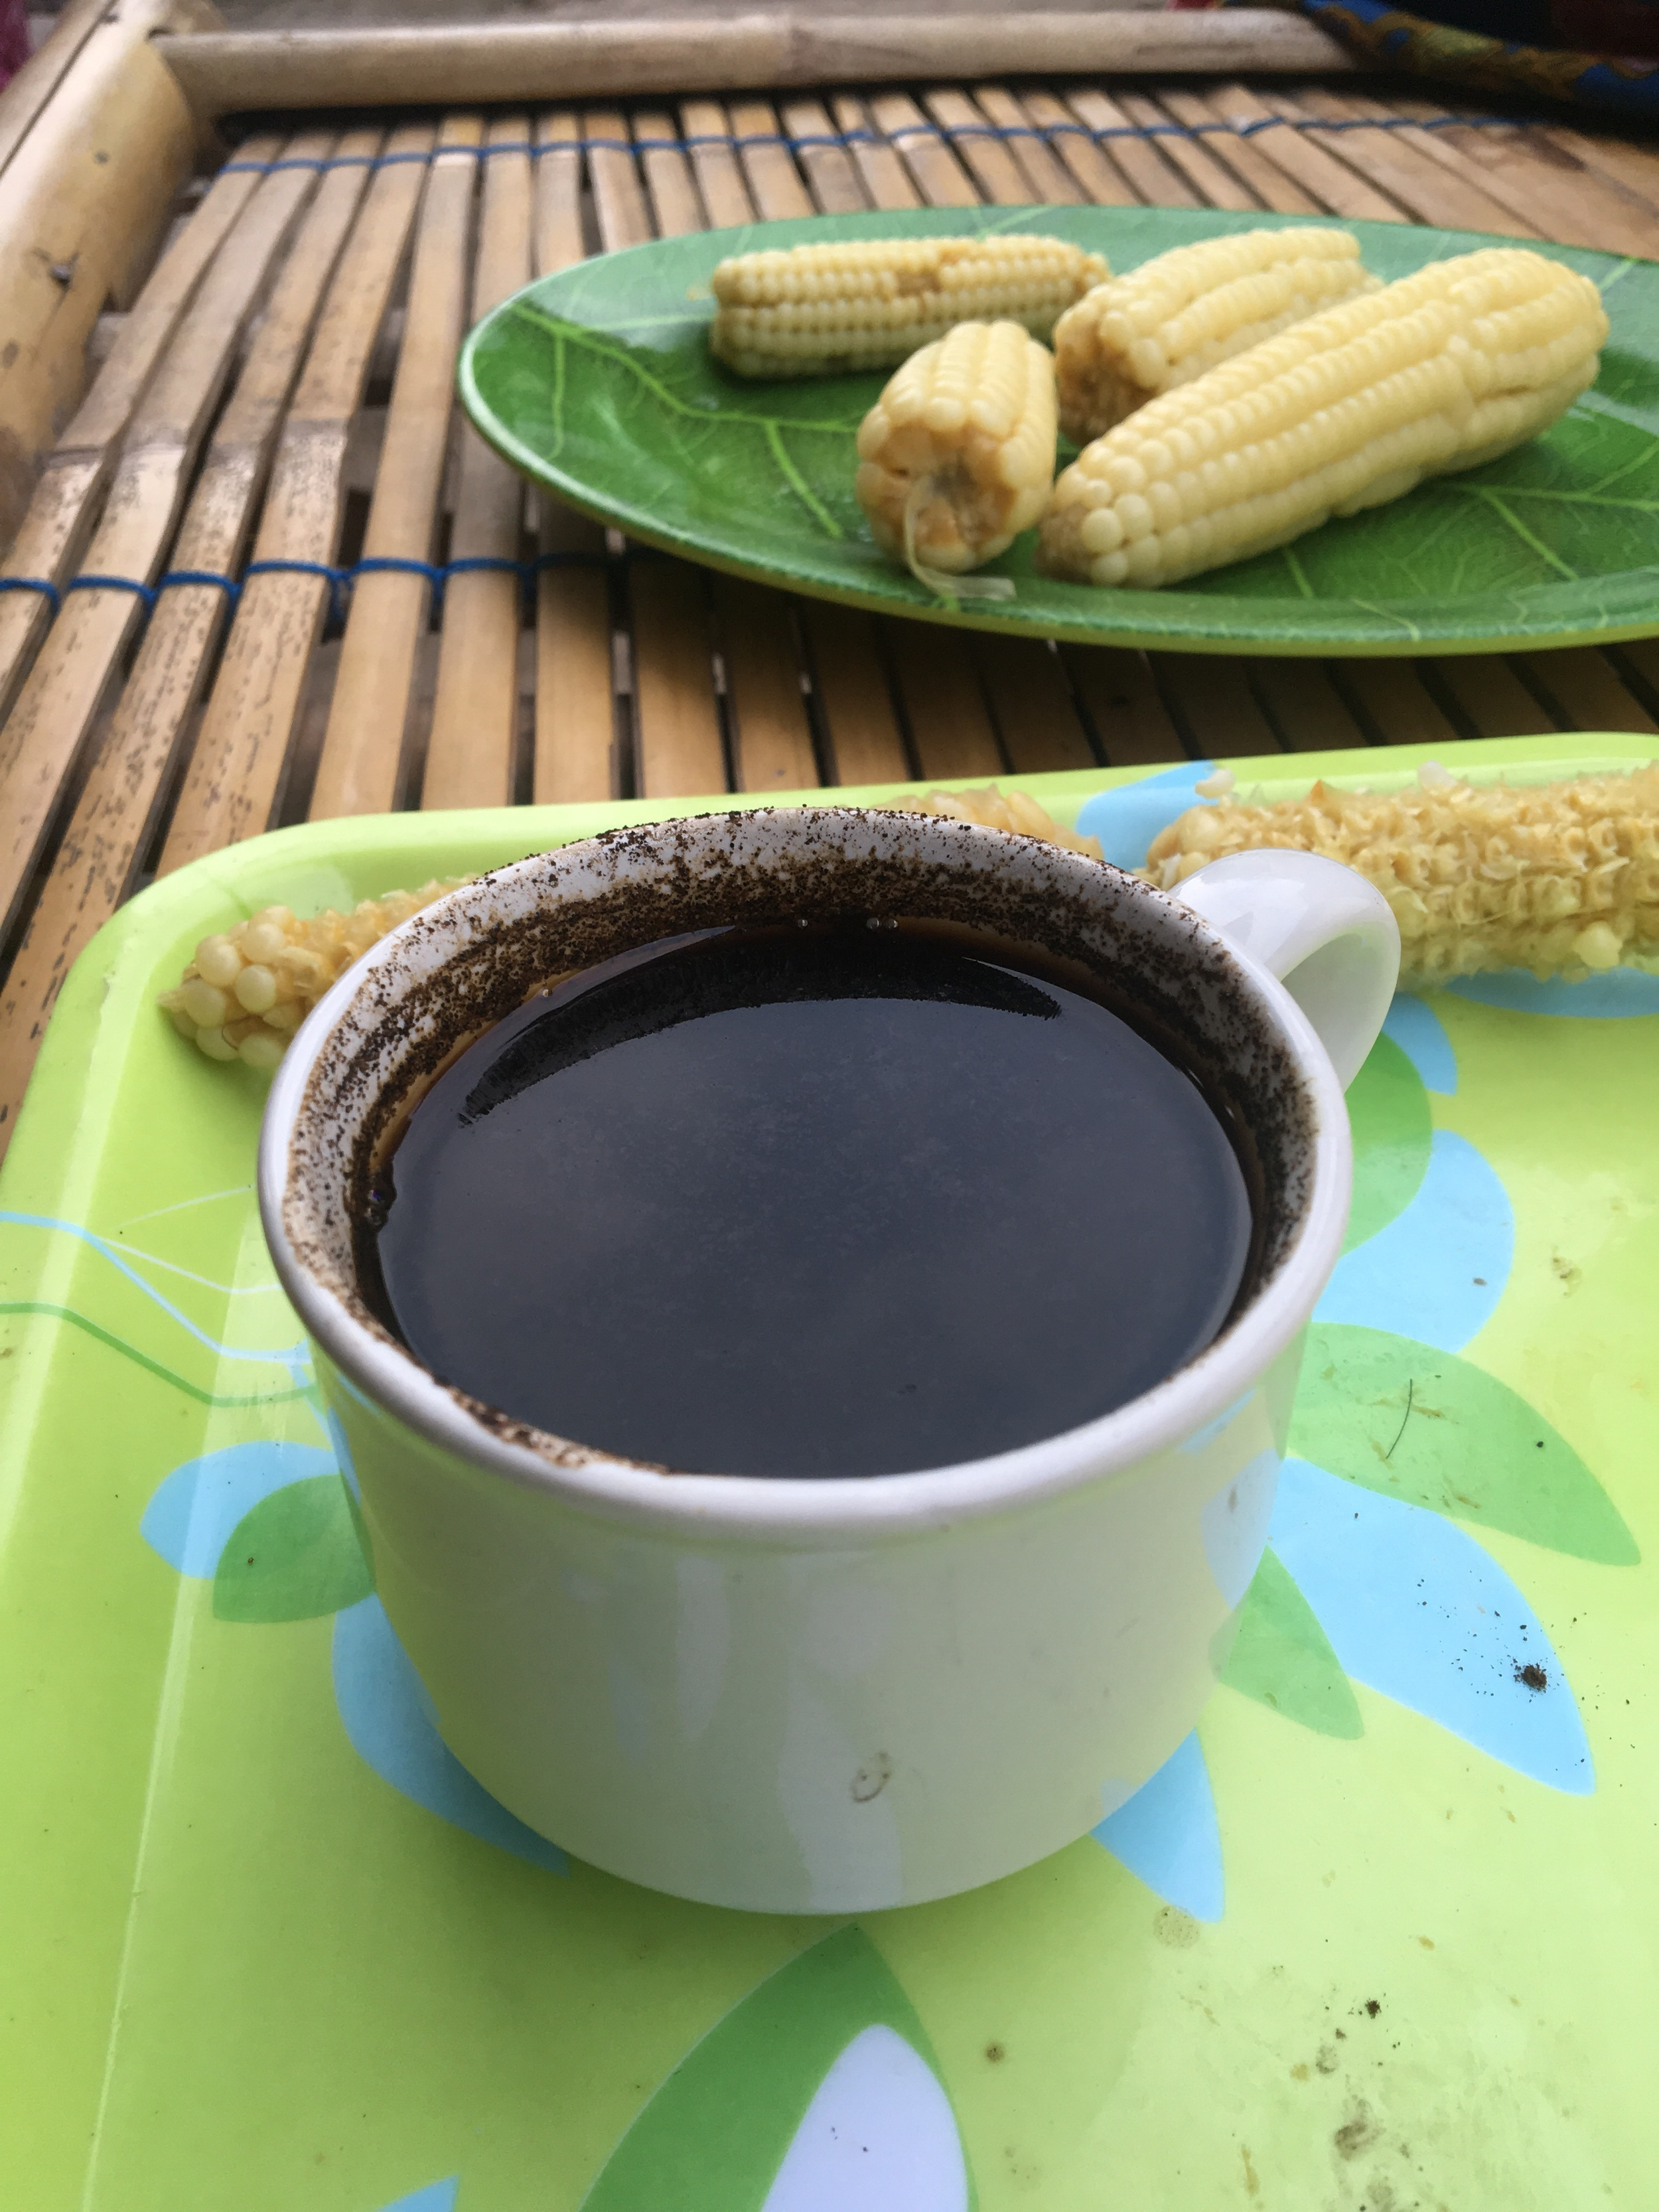 Lombok coffee and sweet corn - a simple breakfast